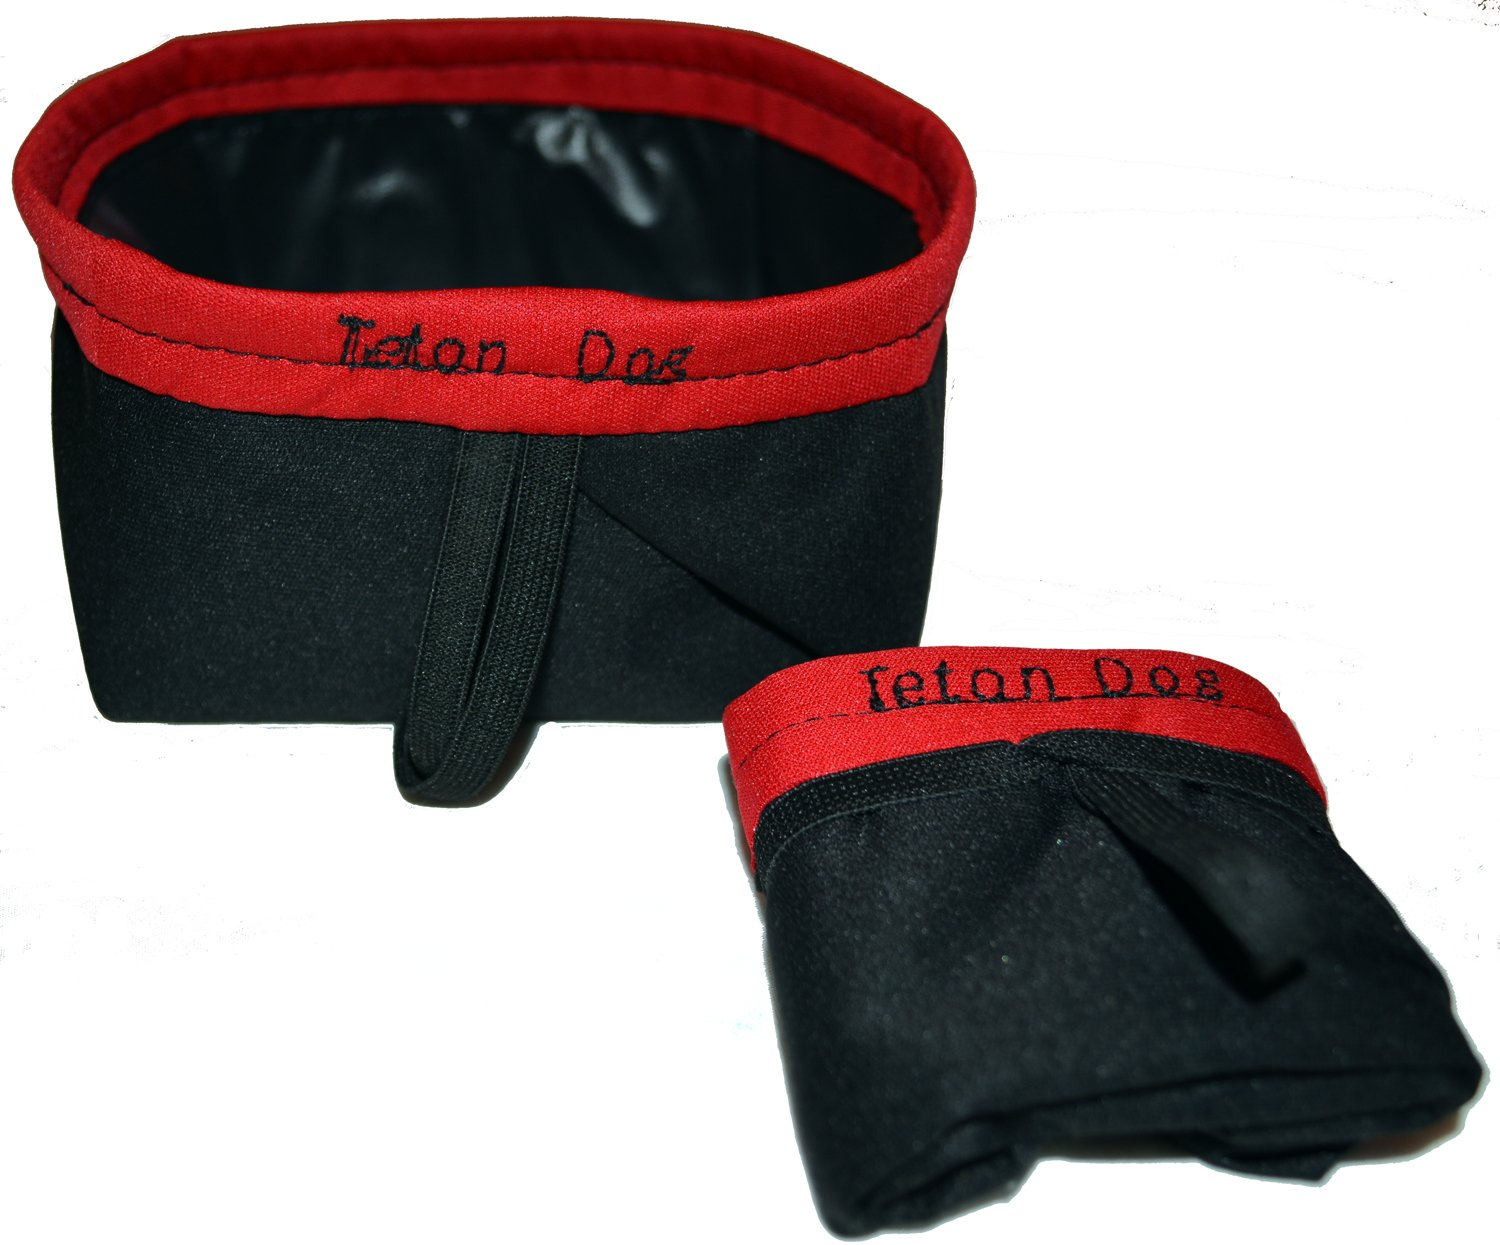 Black w Red Trim Trekking Black w Red Trim Trekking Made in USA 100% Waterproof Washable Fabric Collapsible Folding Travel Pet Dog Water Bowl (Jogging, Hiking, Camping or Car)(Black with Red Trim; Trekking)